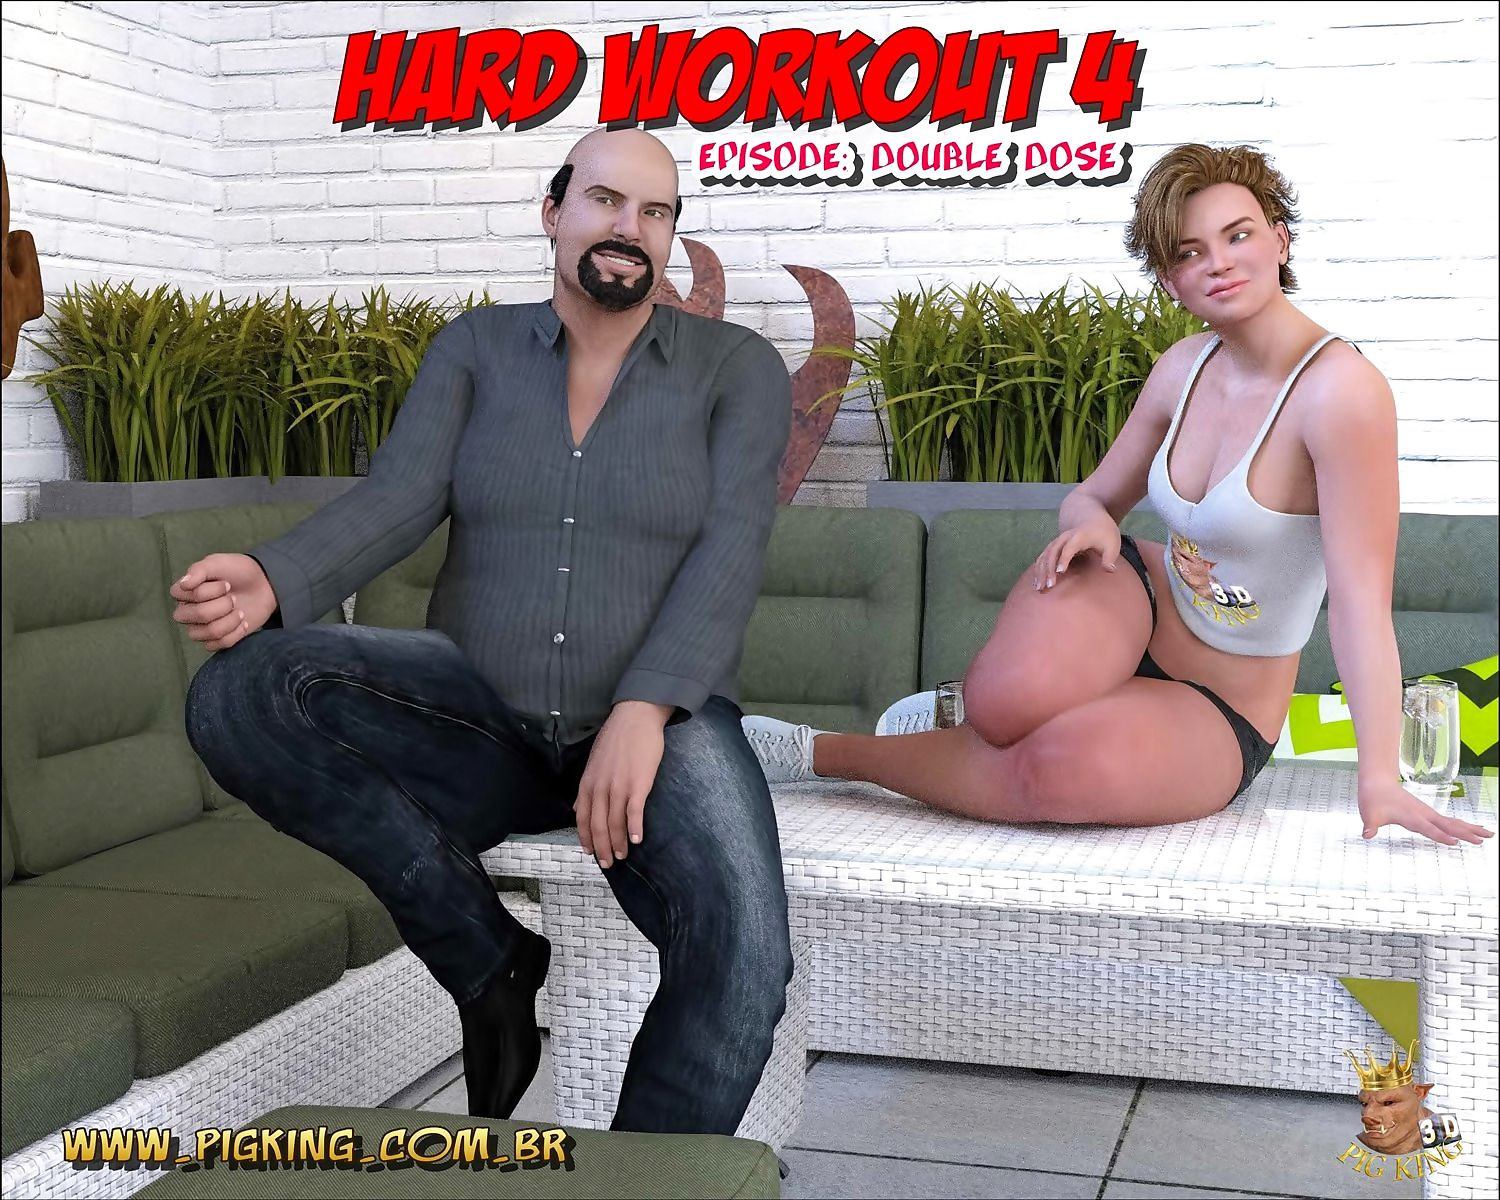 Pig King- Hard Workout 4 Double Dose